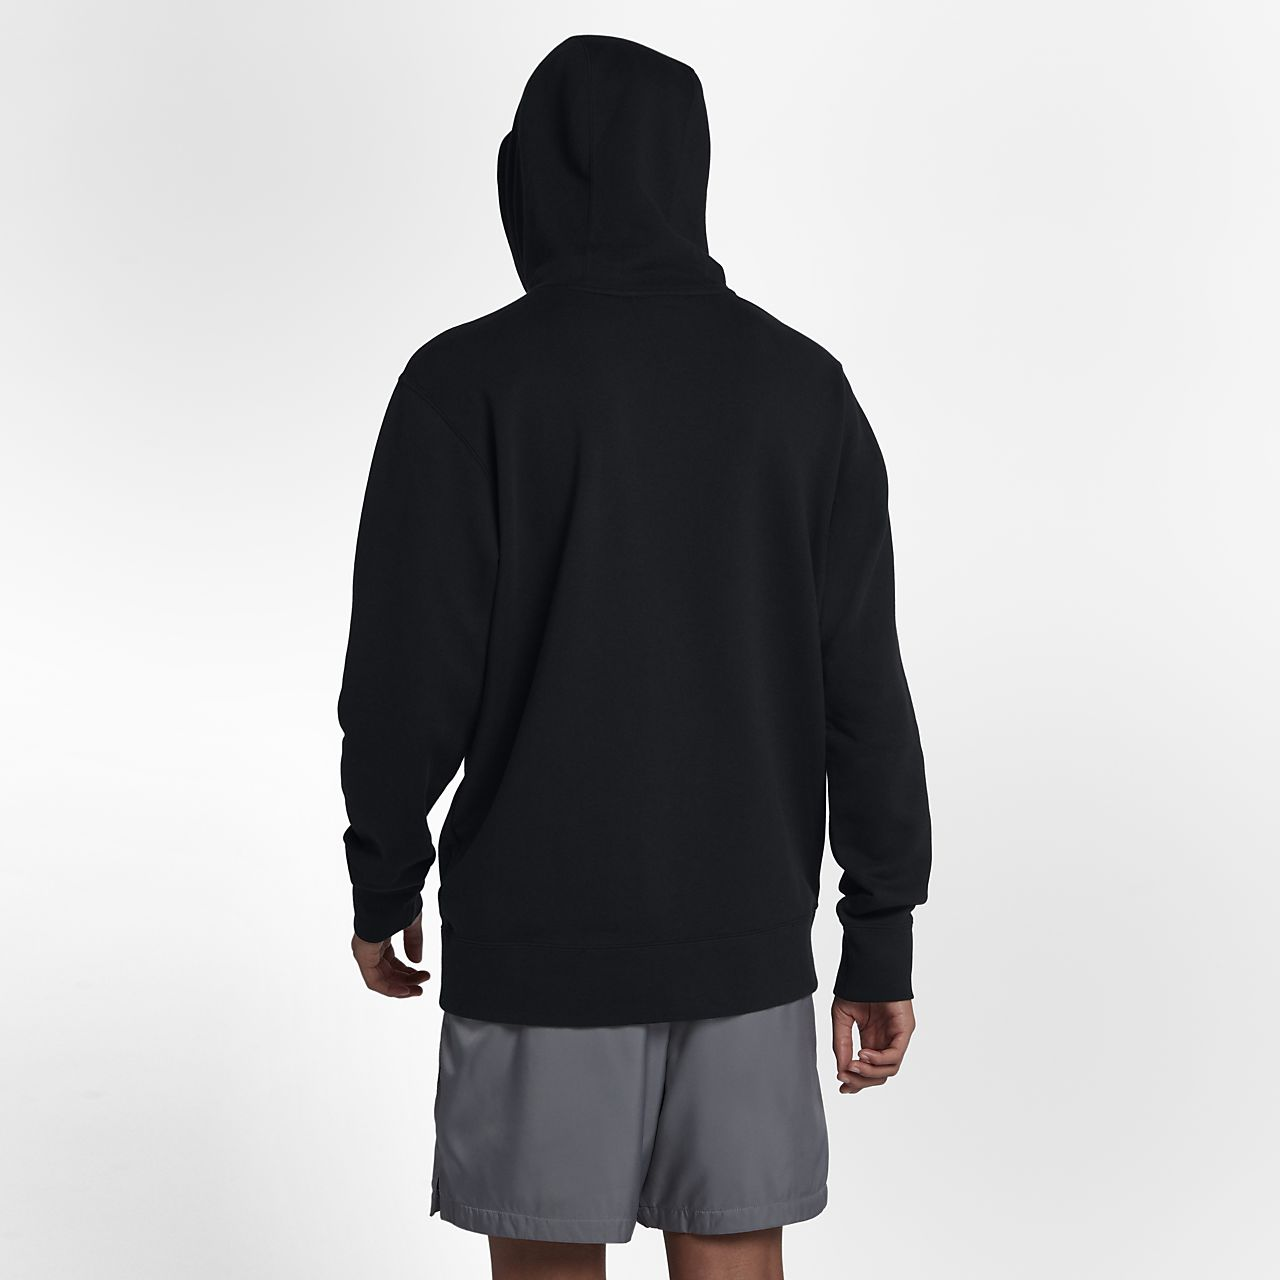 separation shoes 735db 014ab Low Resolution Nike ACG Pullover Hoodie Nike ACG Pullover Hoodie